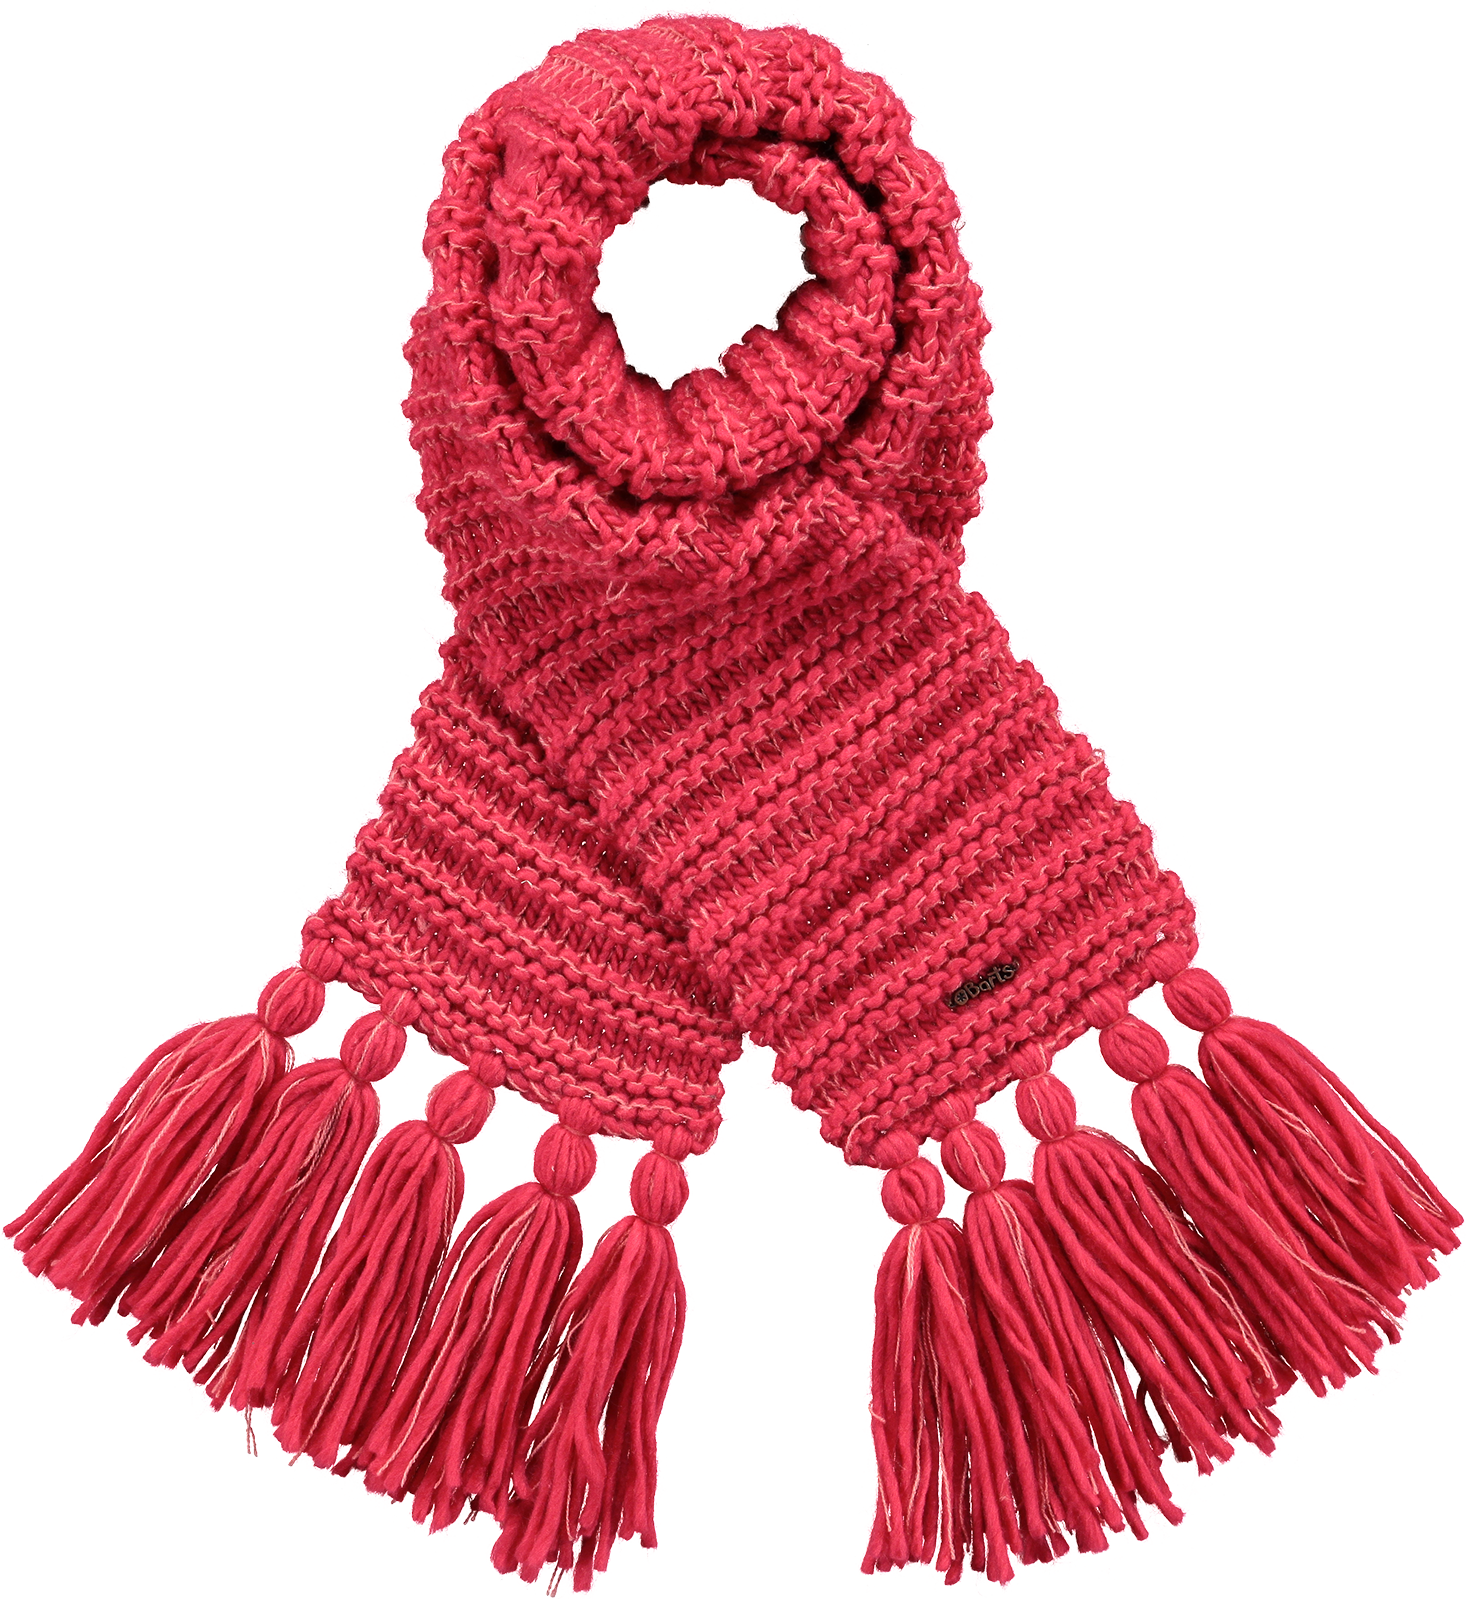 Red Scarf Png Image Red Scarves Scarf Red